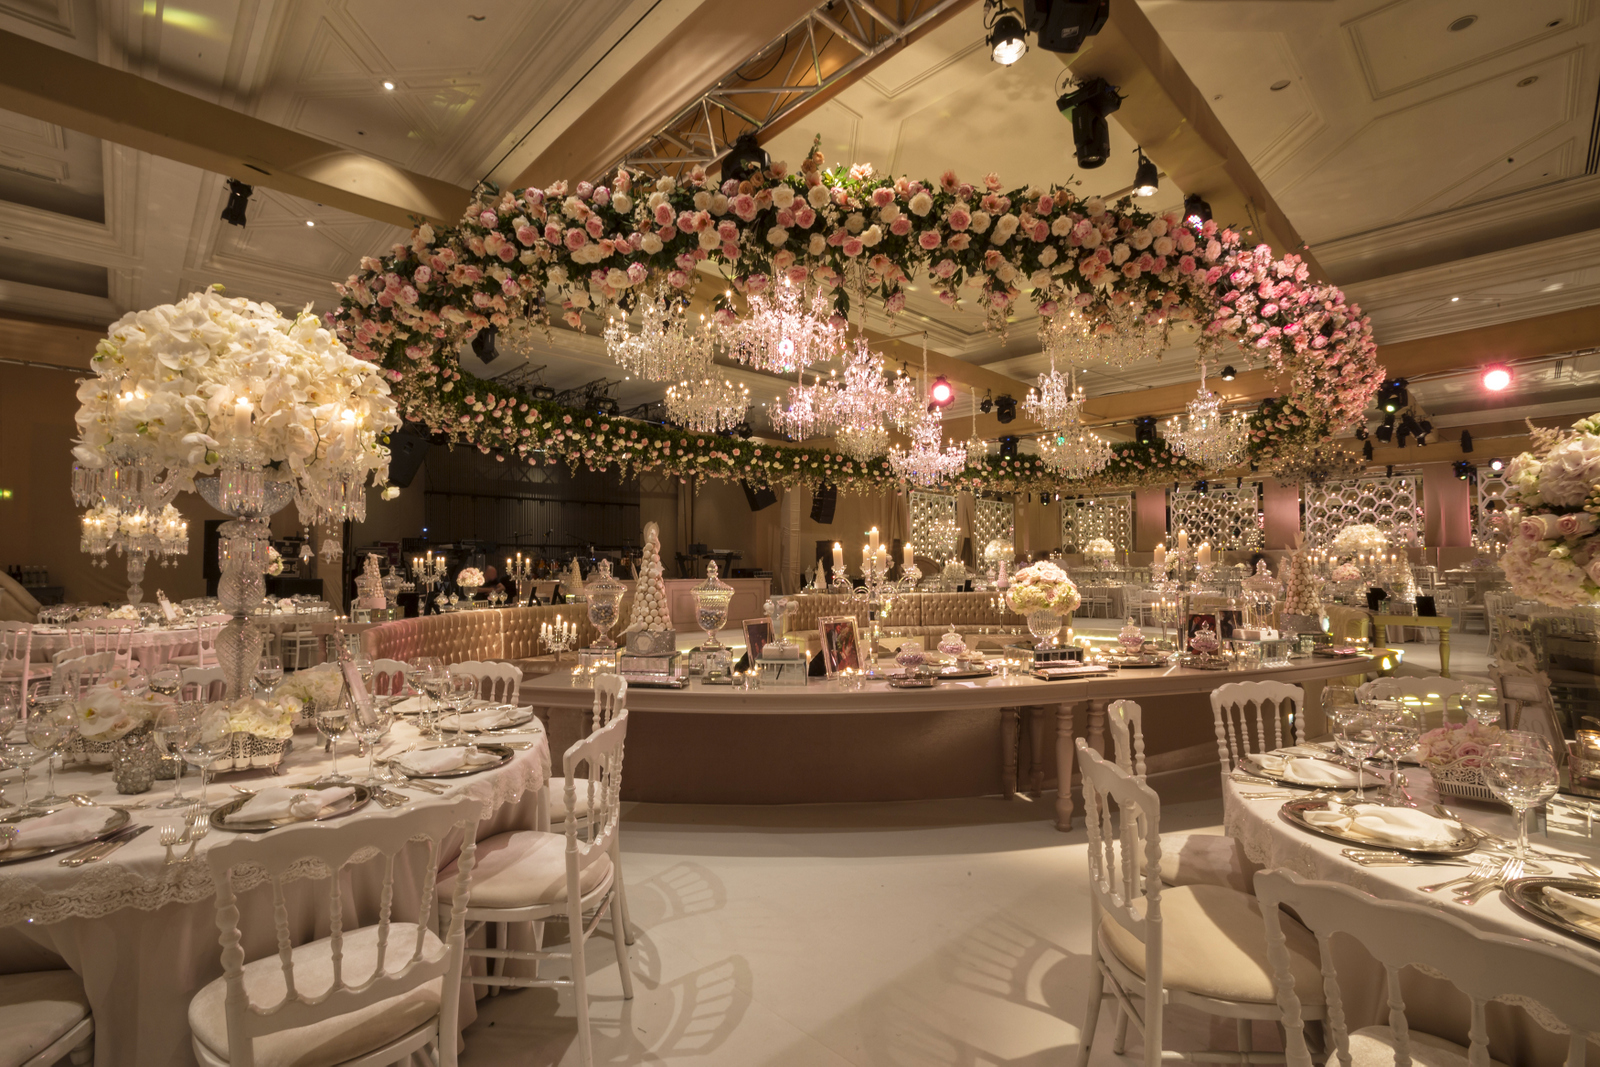 11 of The Most Stunning Wedding Ballrooms & Halls From Around the World